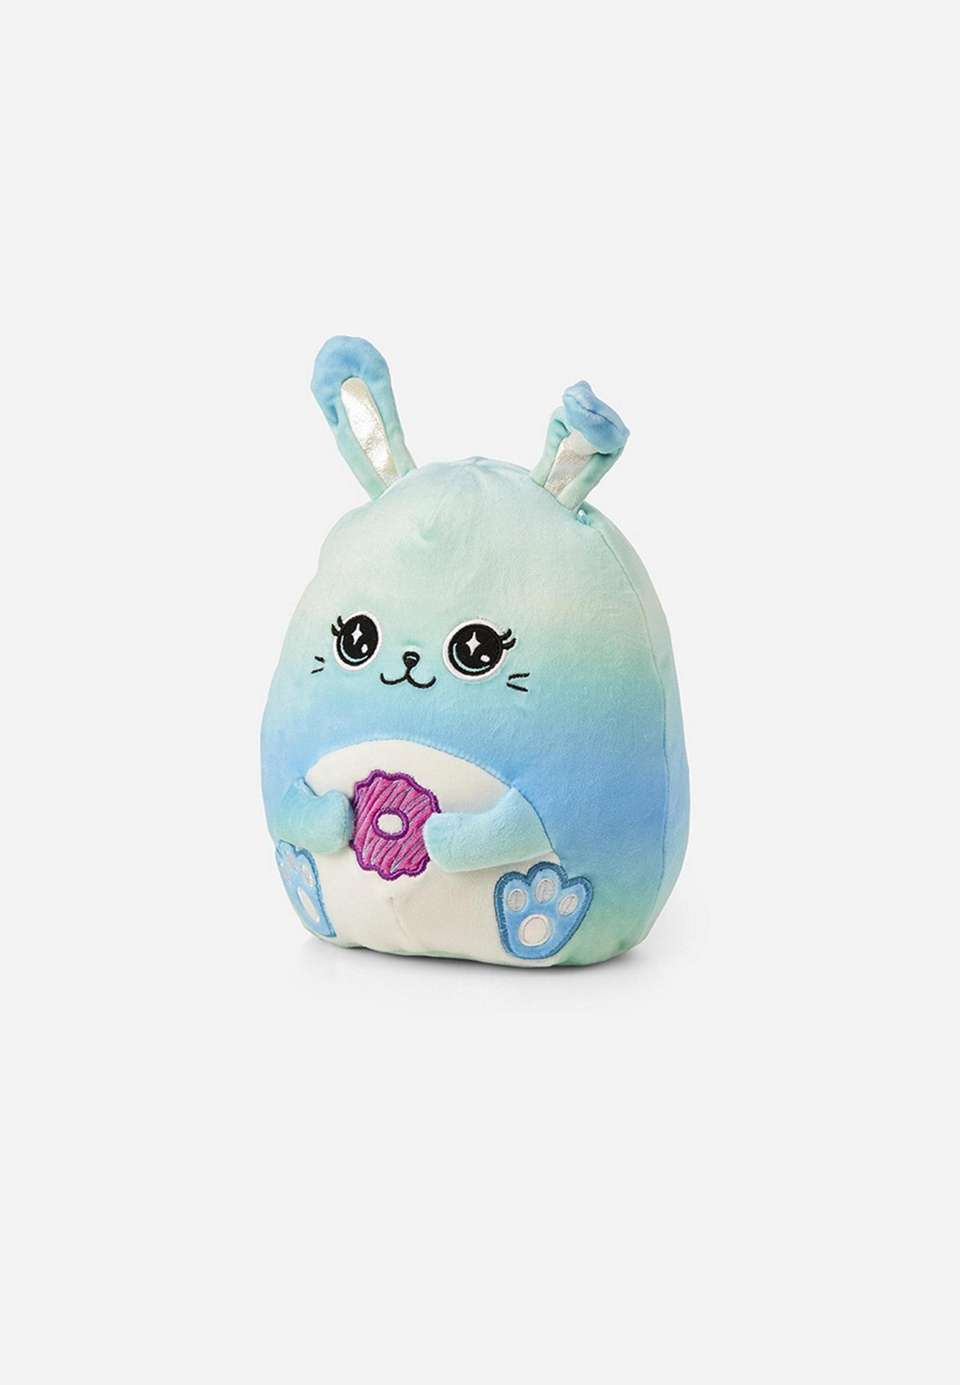 This pillow-like bunny will become any kid's favorite.